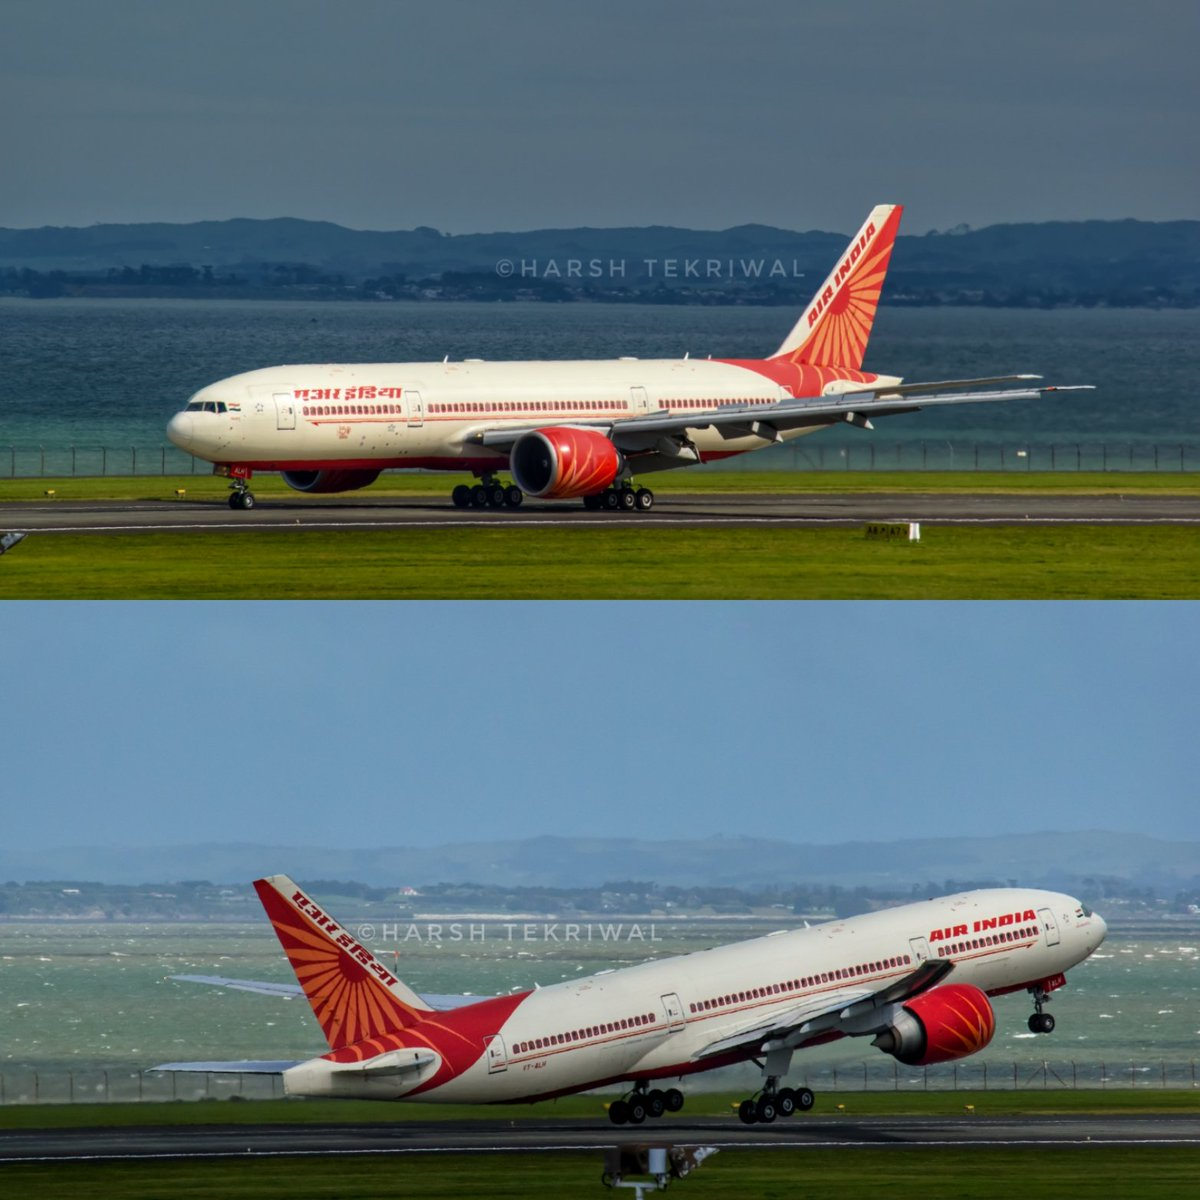 @airindiain arrived @AKL_Airport from @DelhiAirport on 26th September, and it departed from @AKL_Airport today for its 11th repatriation flight from NZ. 📸: #NikonD3500 @BoeingAirplanes @Boeing  #aviation #aviationphotography #aviationphotos #AirIndia #Auckland https://t.co/1zAfPz1Swz